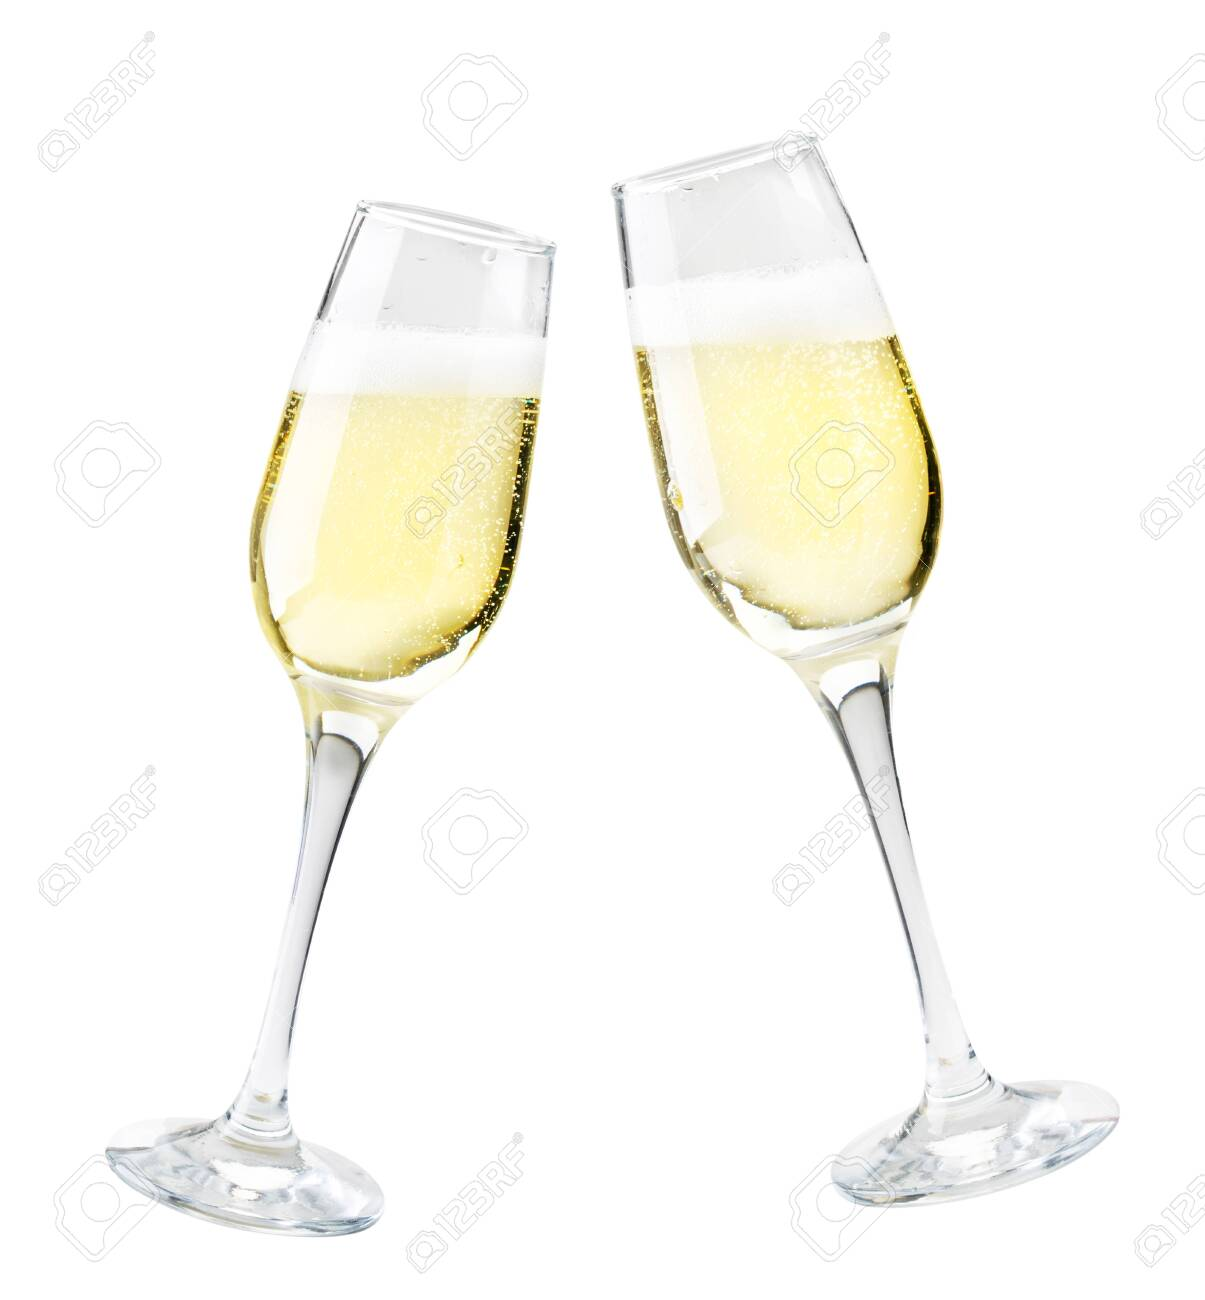 Two glasses of champagne on a white background. Isolated - 133840303